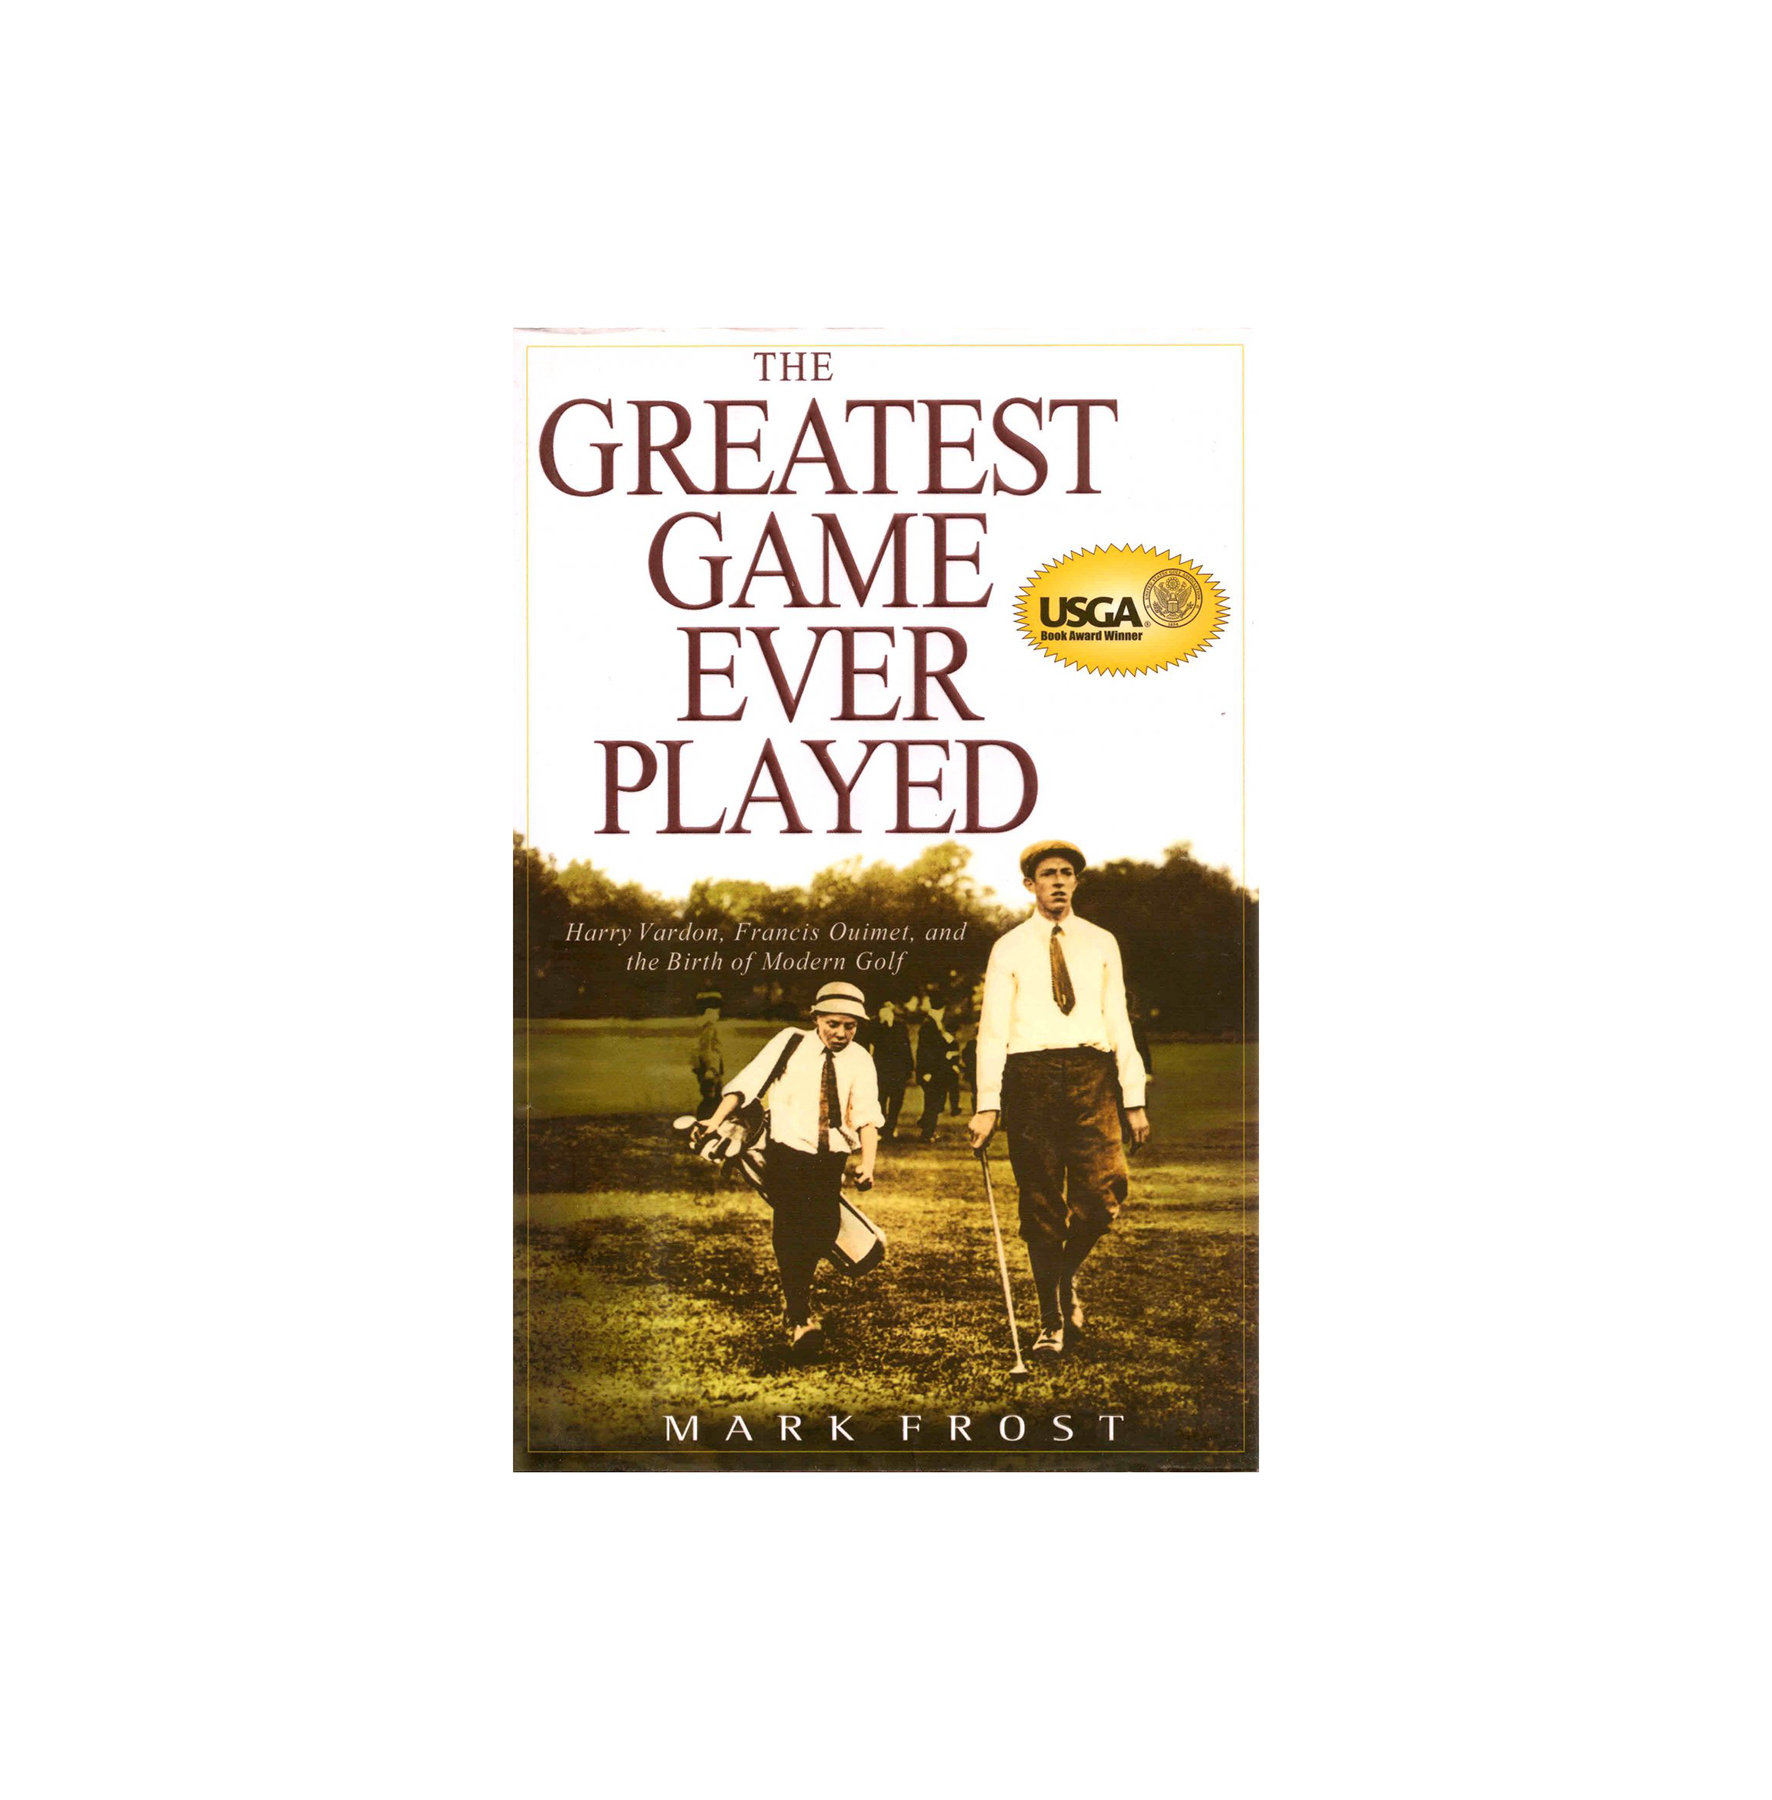 The Greatest Game Ever Played, by Mark Frost